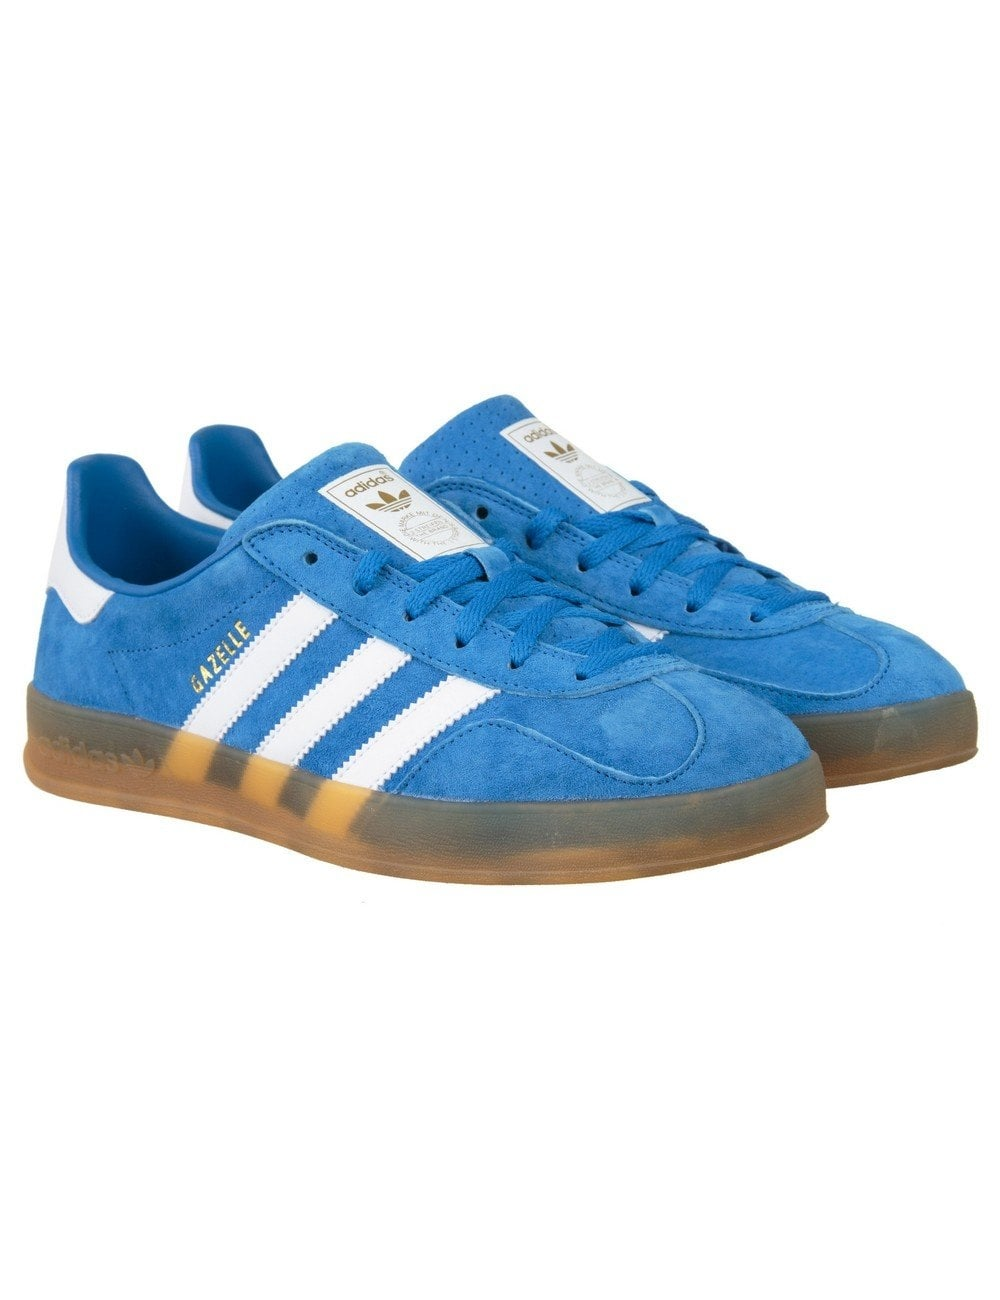 adidas gazelle indoor blue